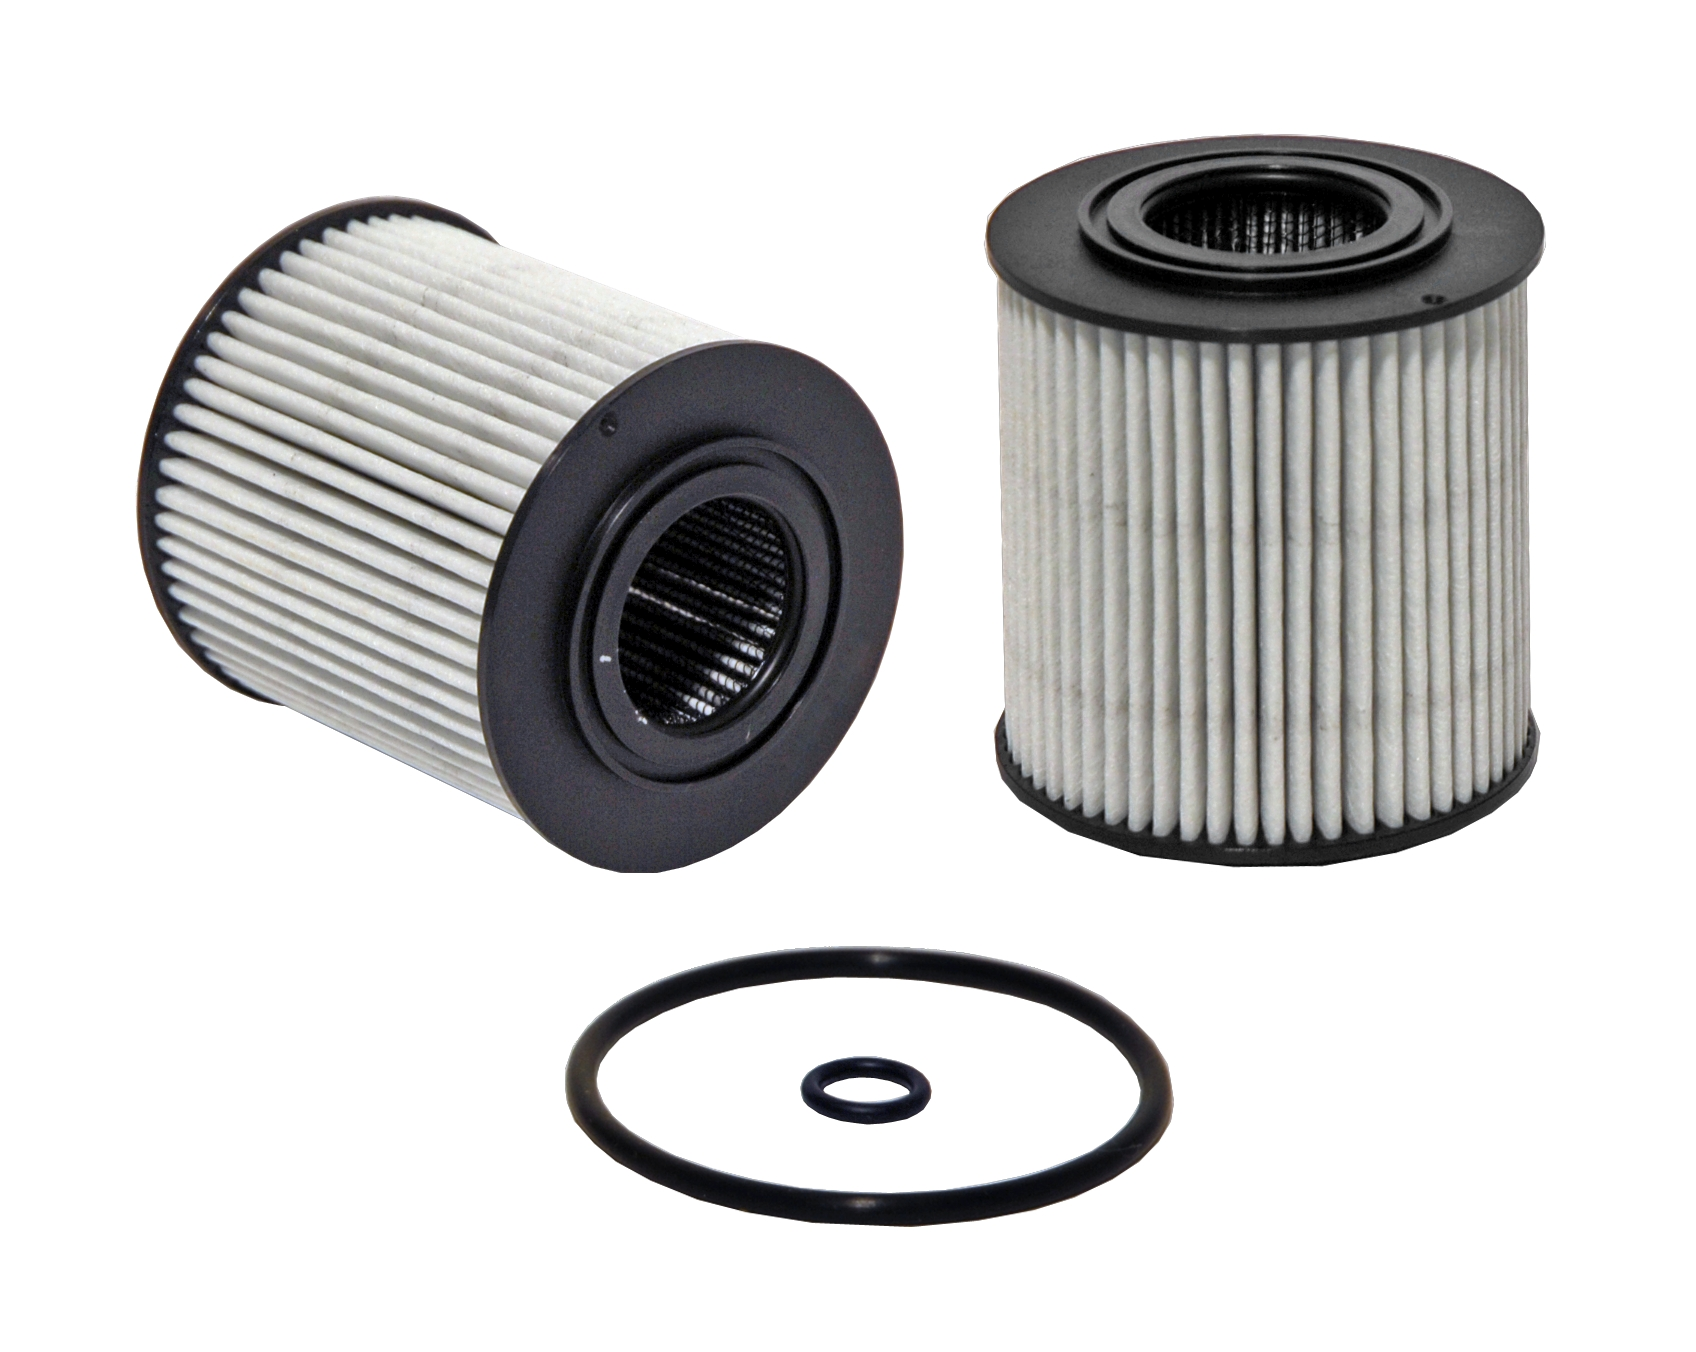 Pack of 1 WIX Filters 51516XP Xp Spin-On Lube Filter